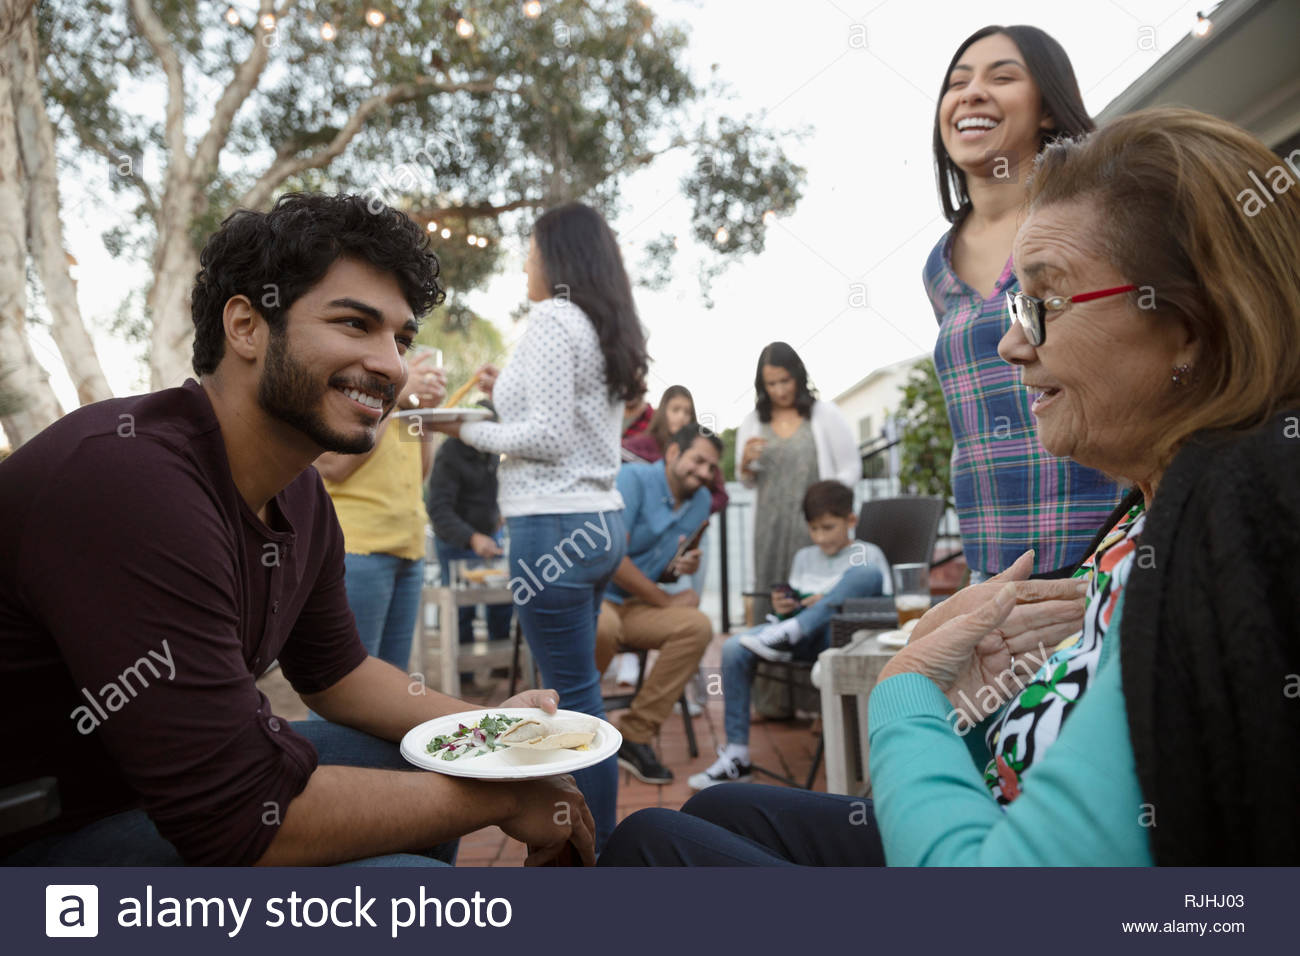 Latinx grandmother and grandson talking and eating on patio - Stock Image